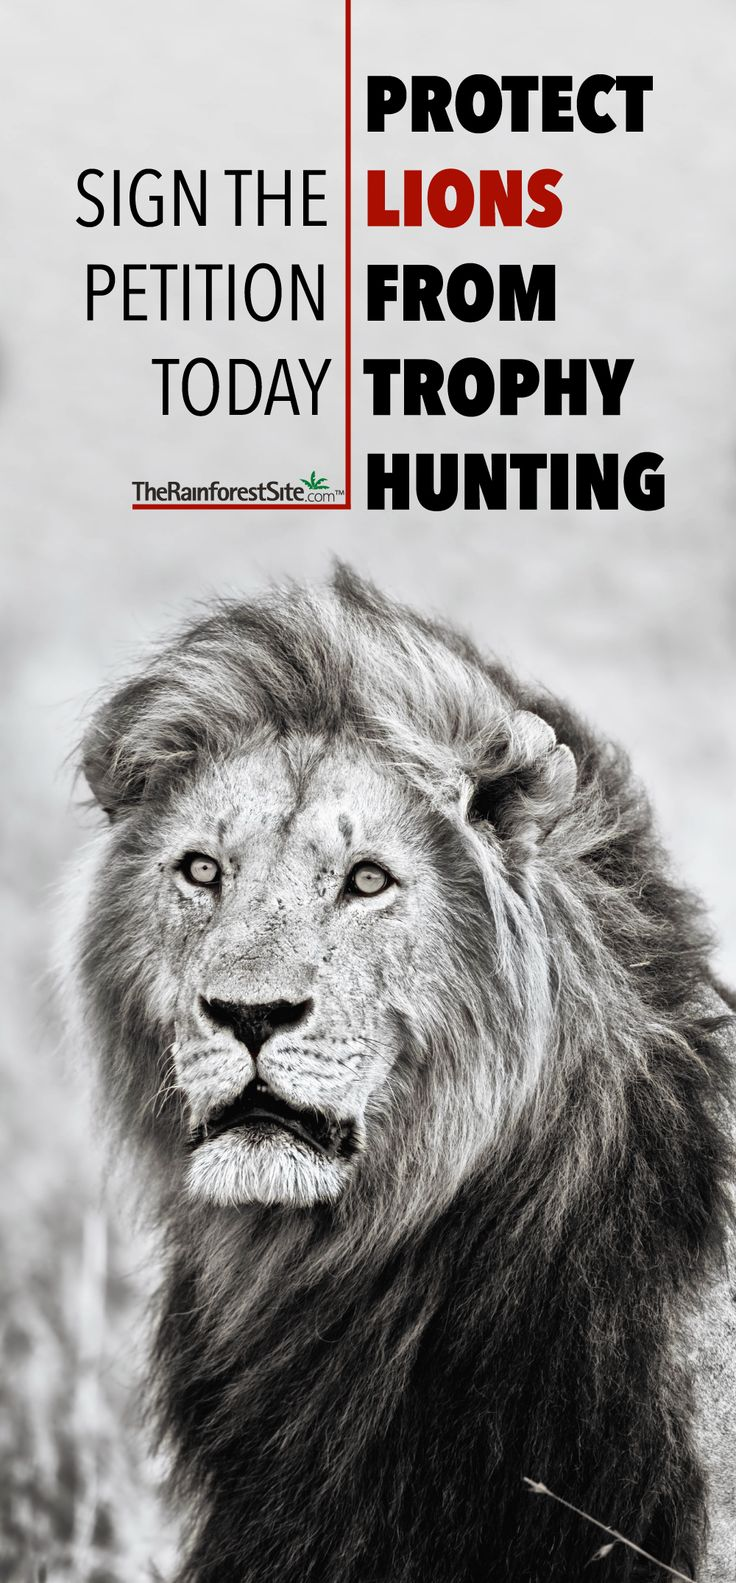 RIP CECIL! Protect Lions From Cruel Trophy Hunting Tell the International Union for Conservation of Nature that vulnerable species shouldn't be allowed in game hunts. SIGN THE PETITION TODAY! @therainforestsite